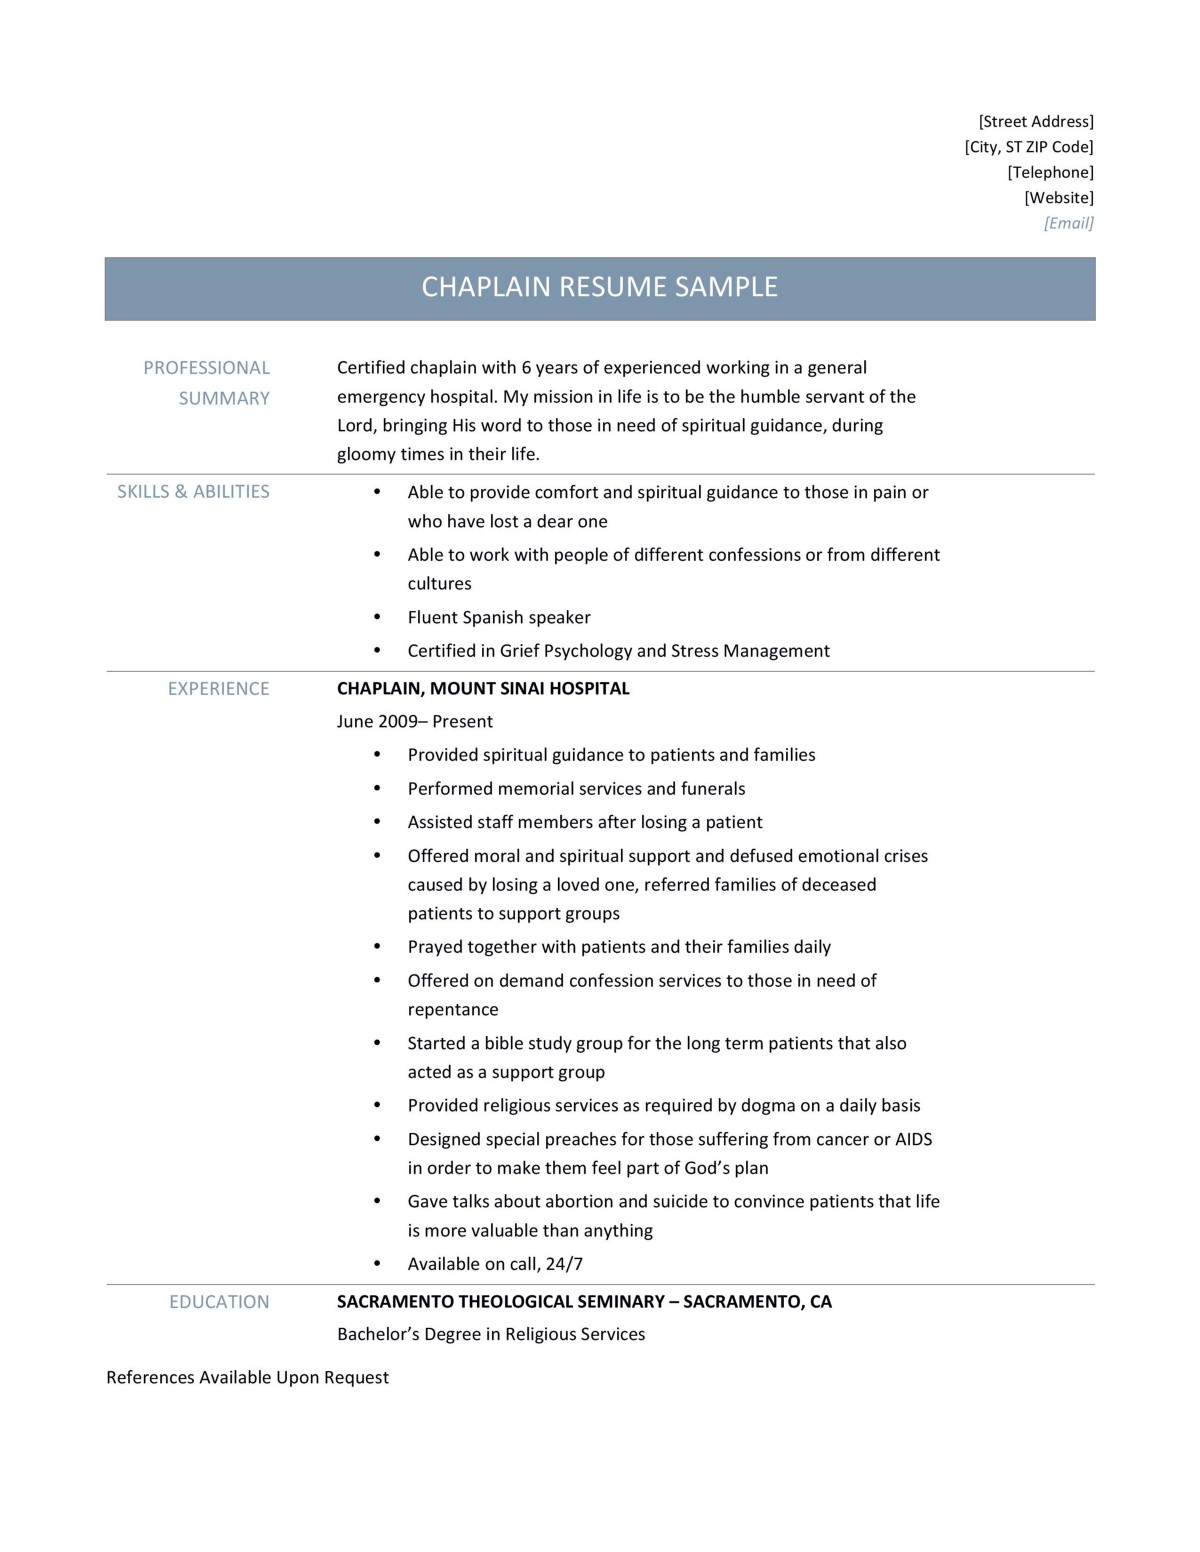 chaplain resume samples tips and templates by builders medium hospital nqqpwjm2ppzhst7t Resume Hospital Chaplain Resume